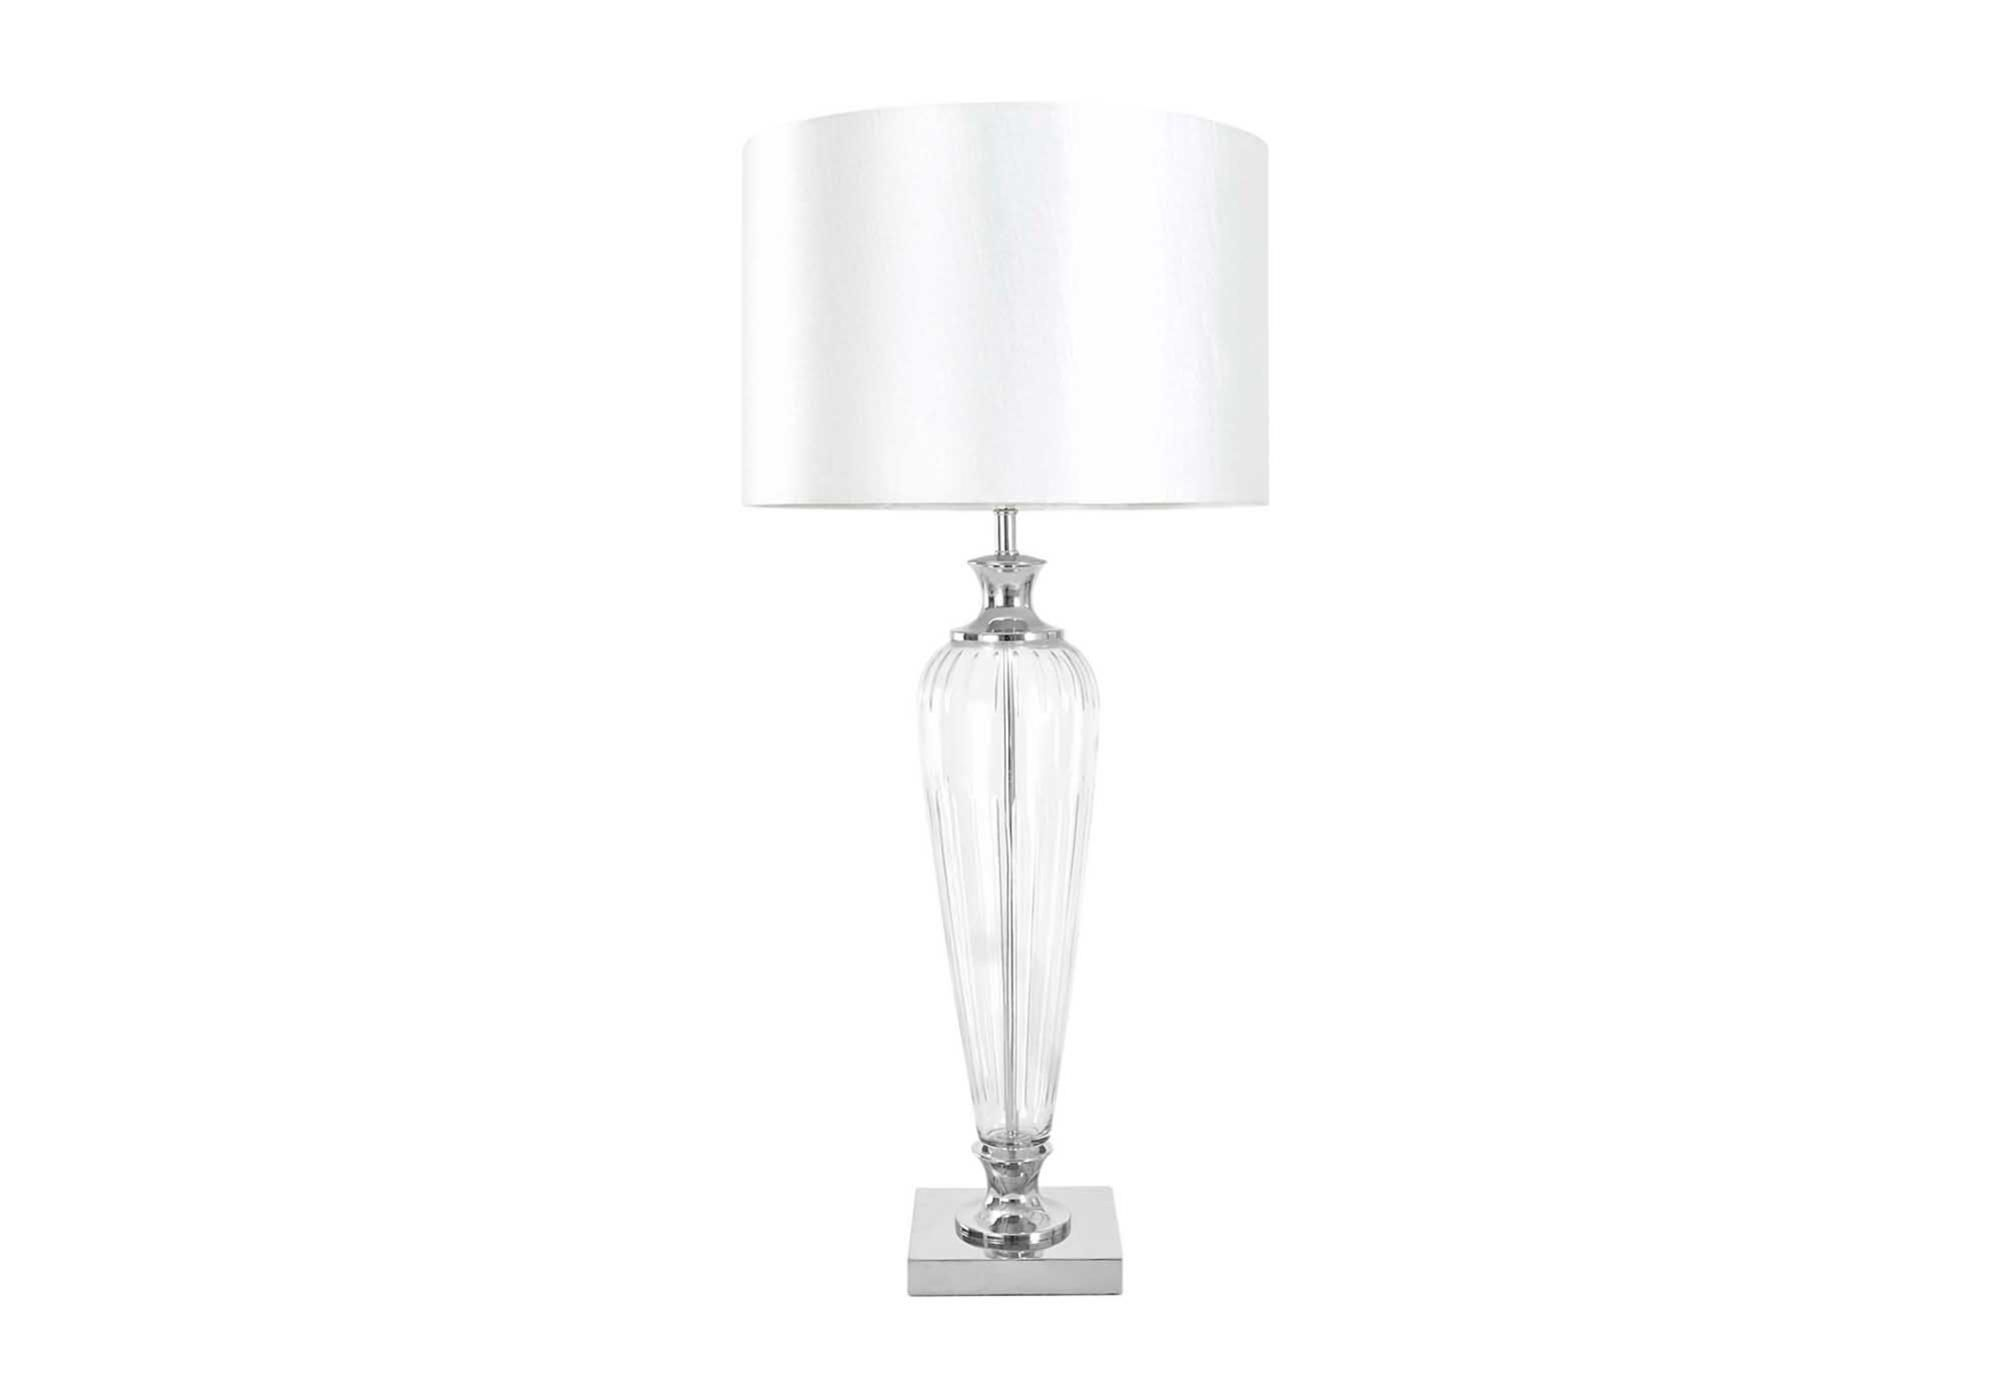 Hinton Table Lamp Lighting 2 Of